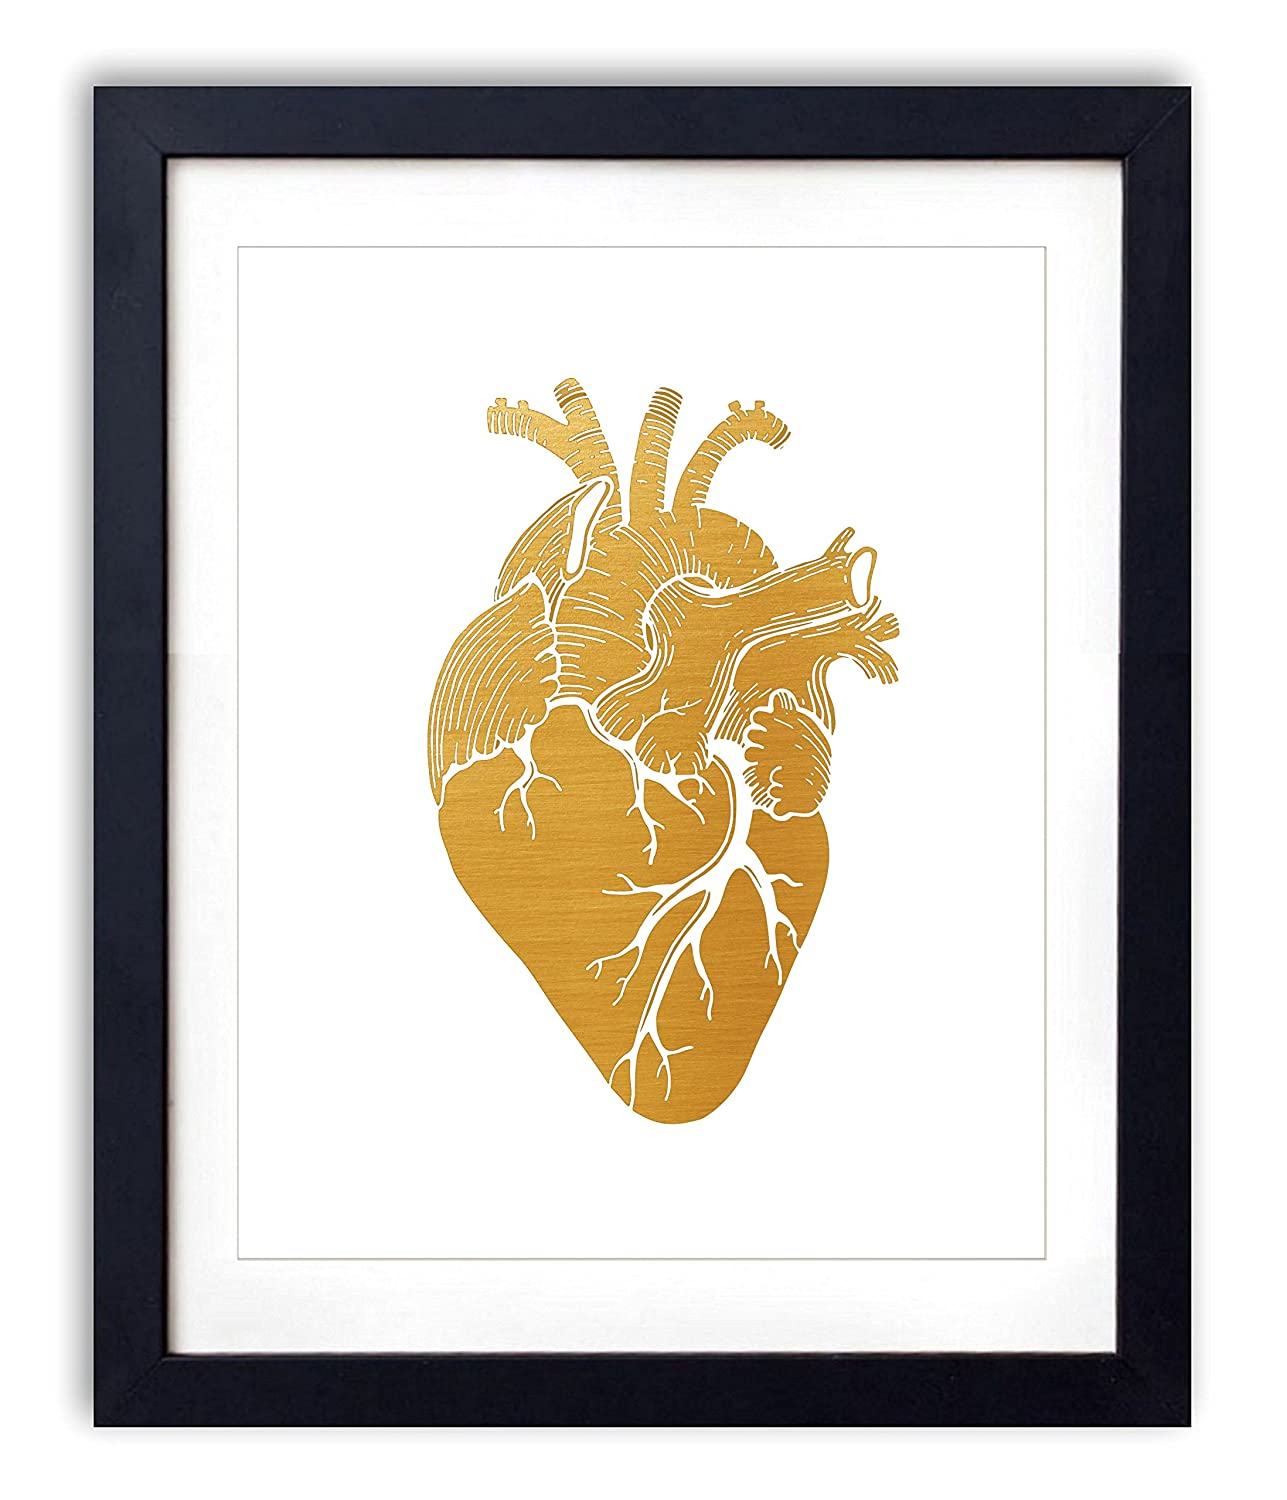 Gold Foil - Anatomical Heart Upcycled Wall Art Vintage Dictionary Art Print 8x10 inches / 20.32 x 25.4 cm Unframed